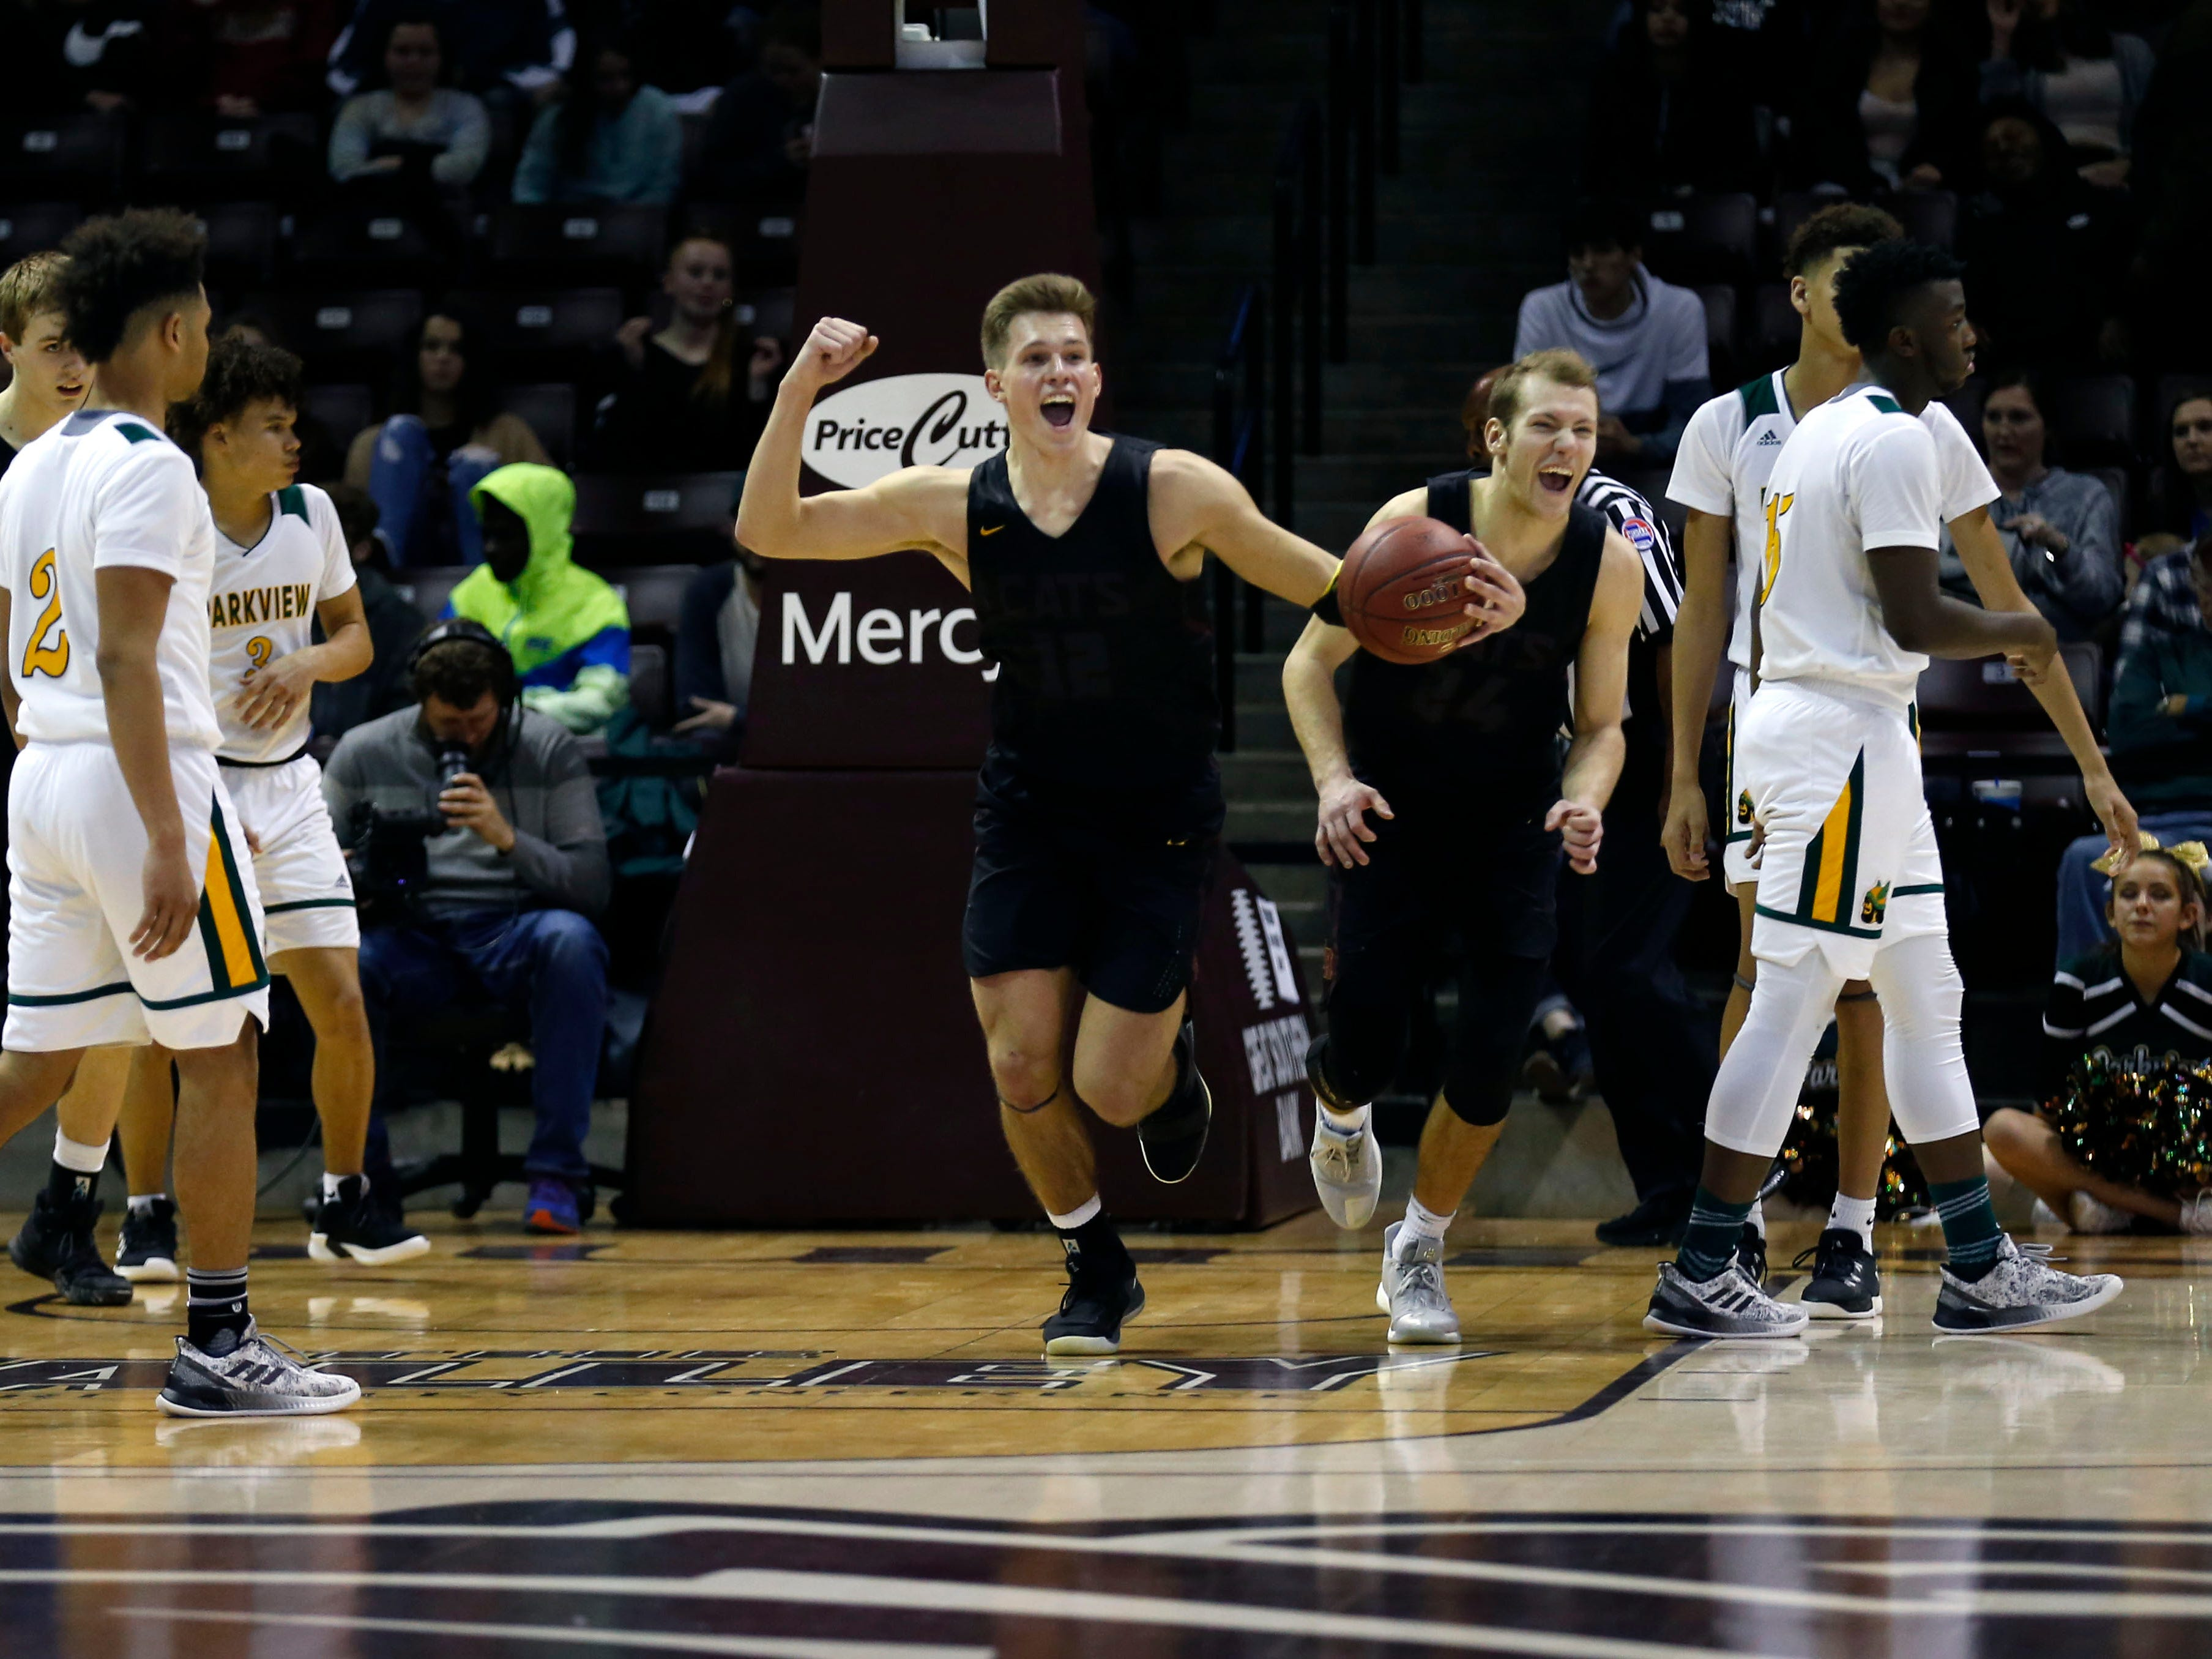 Logan-Rogersville's Luke Vandersnick celebrates after the Wildcats beat the Parkview Vikings in the championship Blue Division game during the 2018 Blue and Gold Tournament at JQH Arena on Saturday, Dec. 29, 2018.